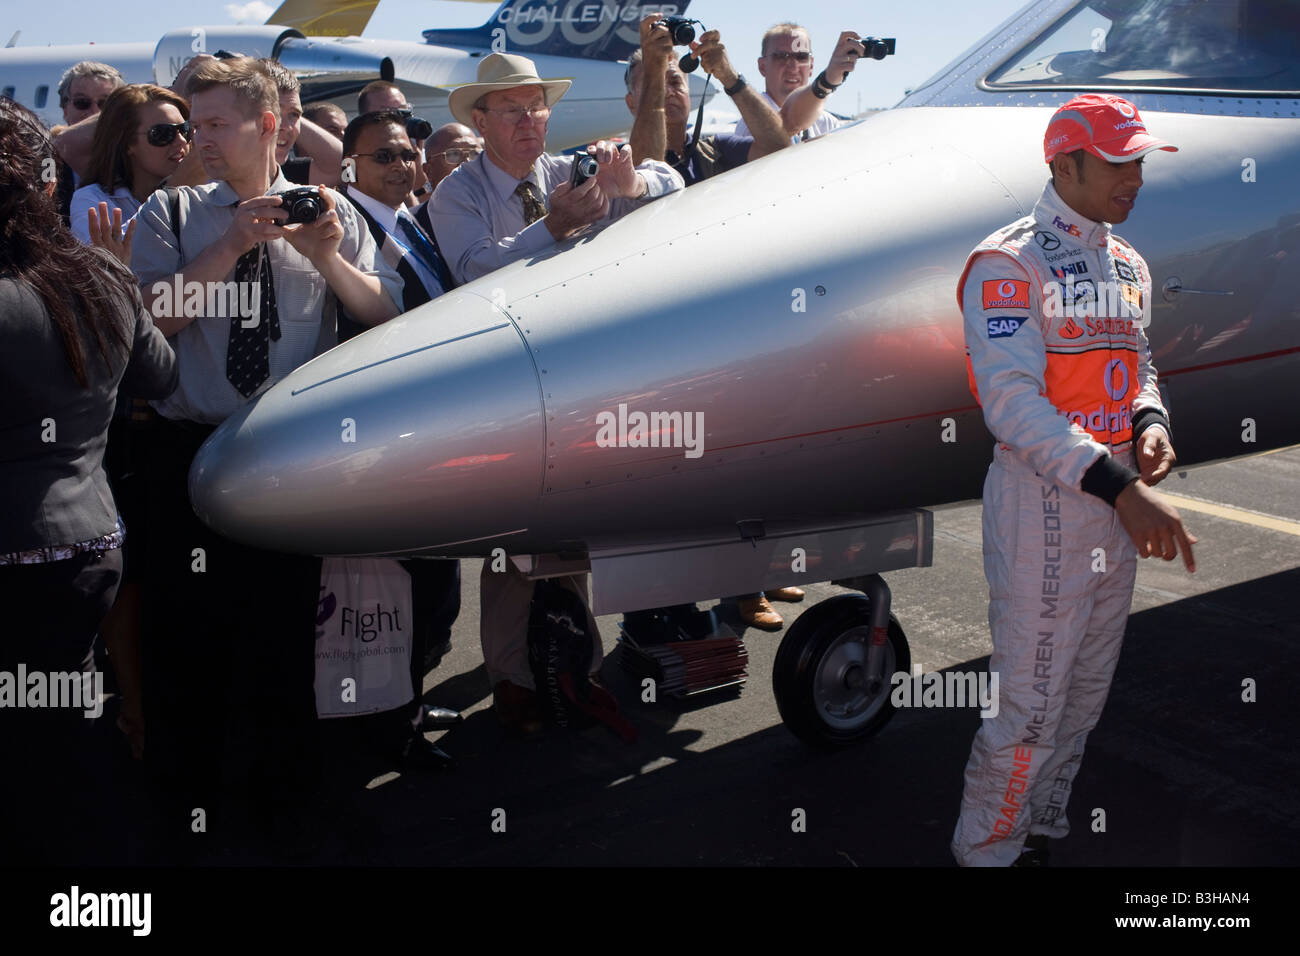 Formula 1 driver Lewis Hamilton attends corporate event at